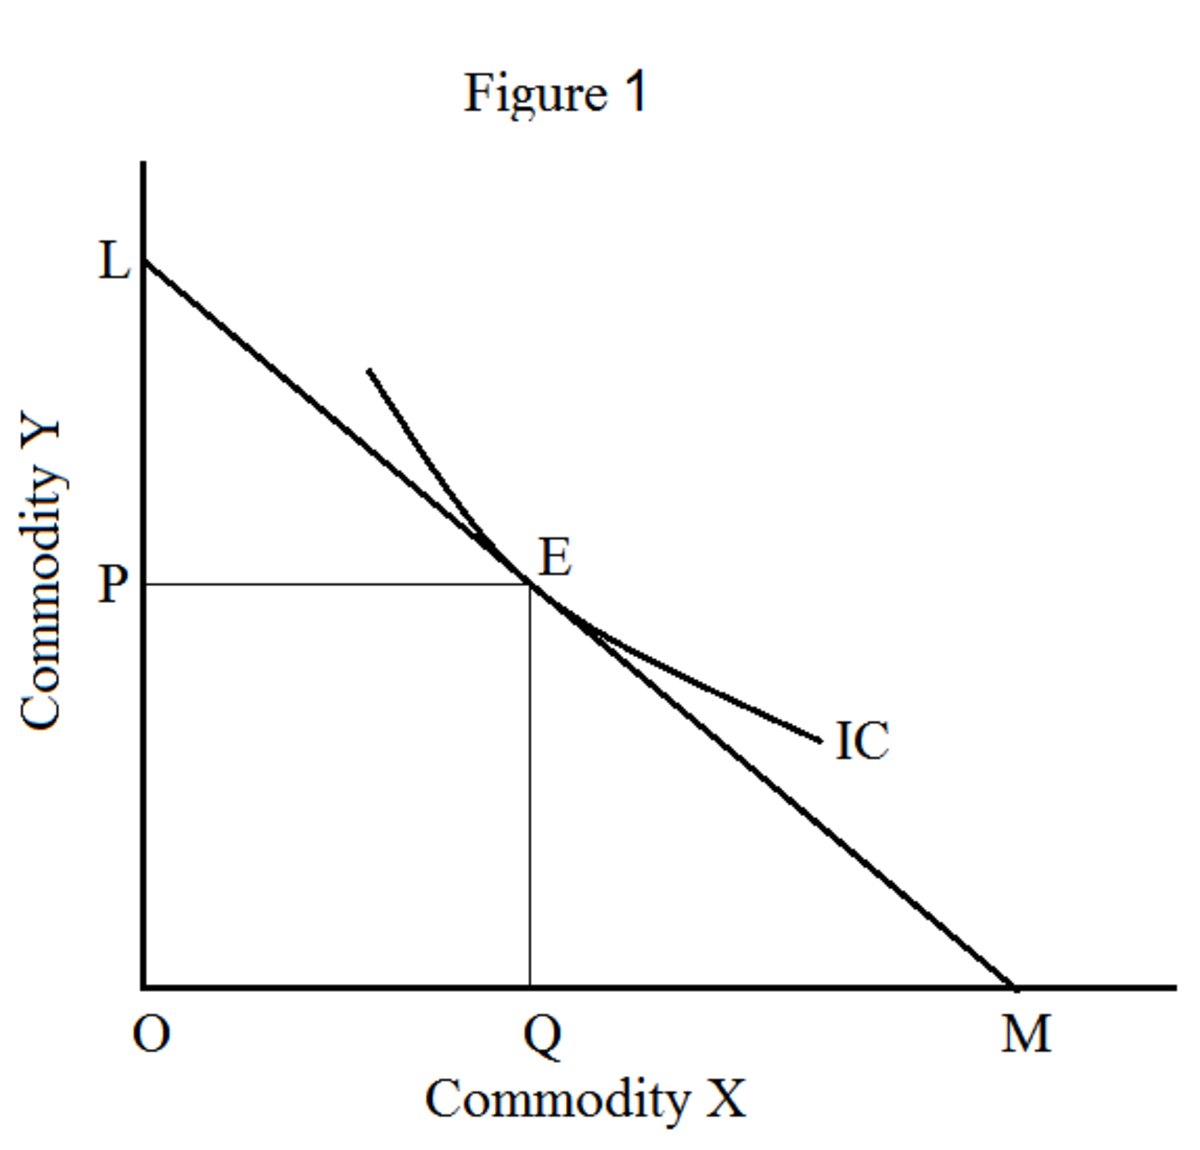 How is Indifference Curve Analysis Superior to Marshallian Cardinal Utility Theory?